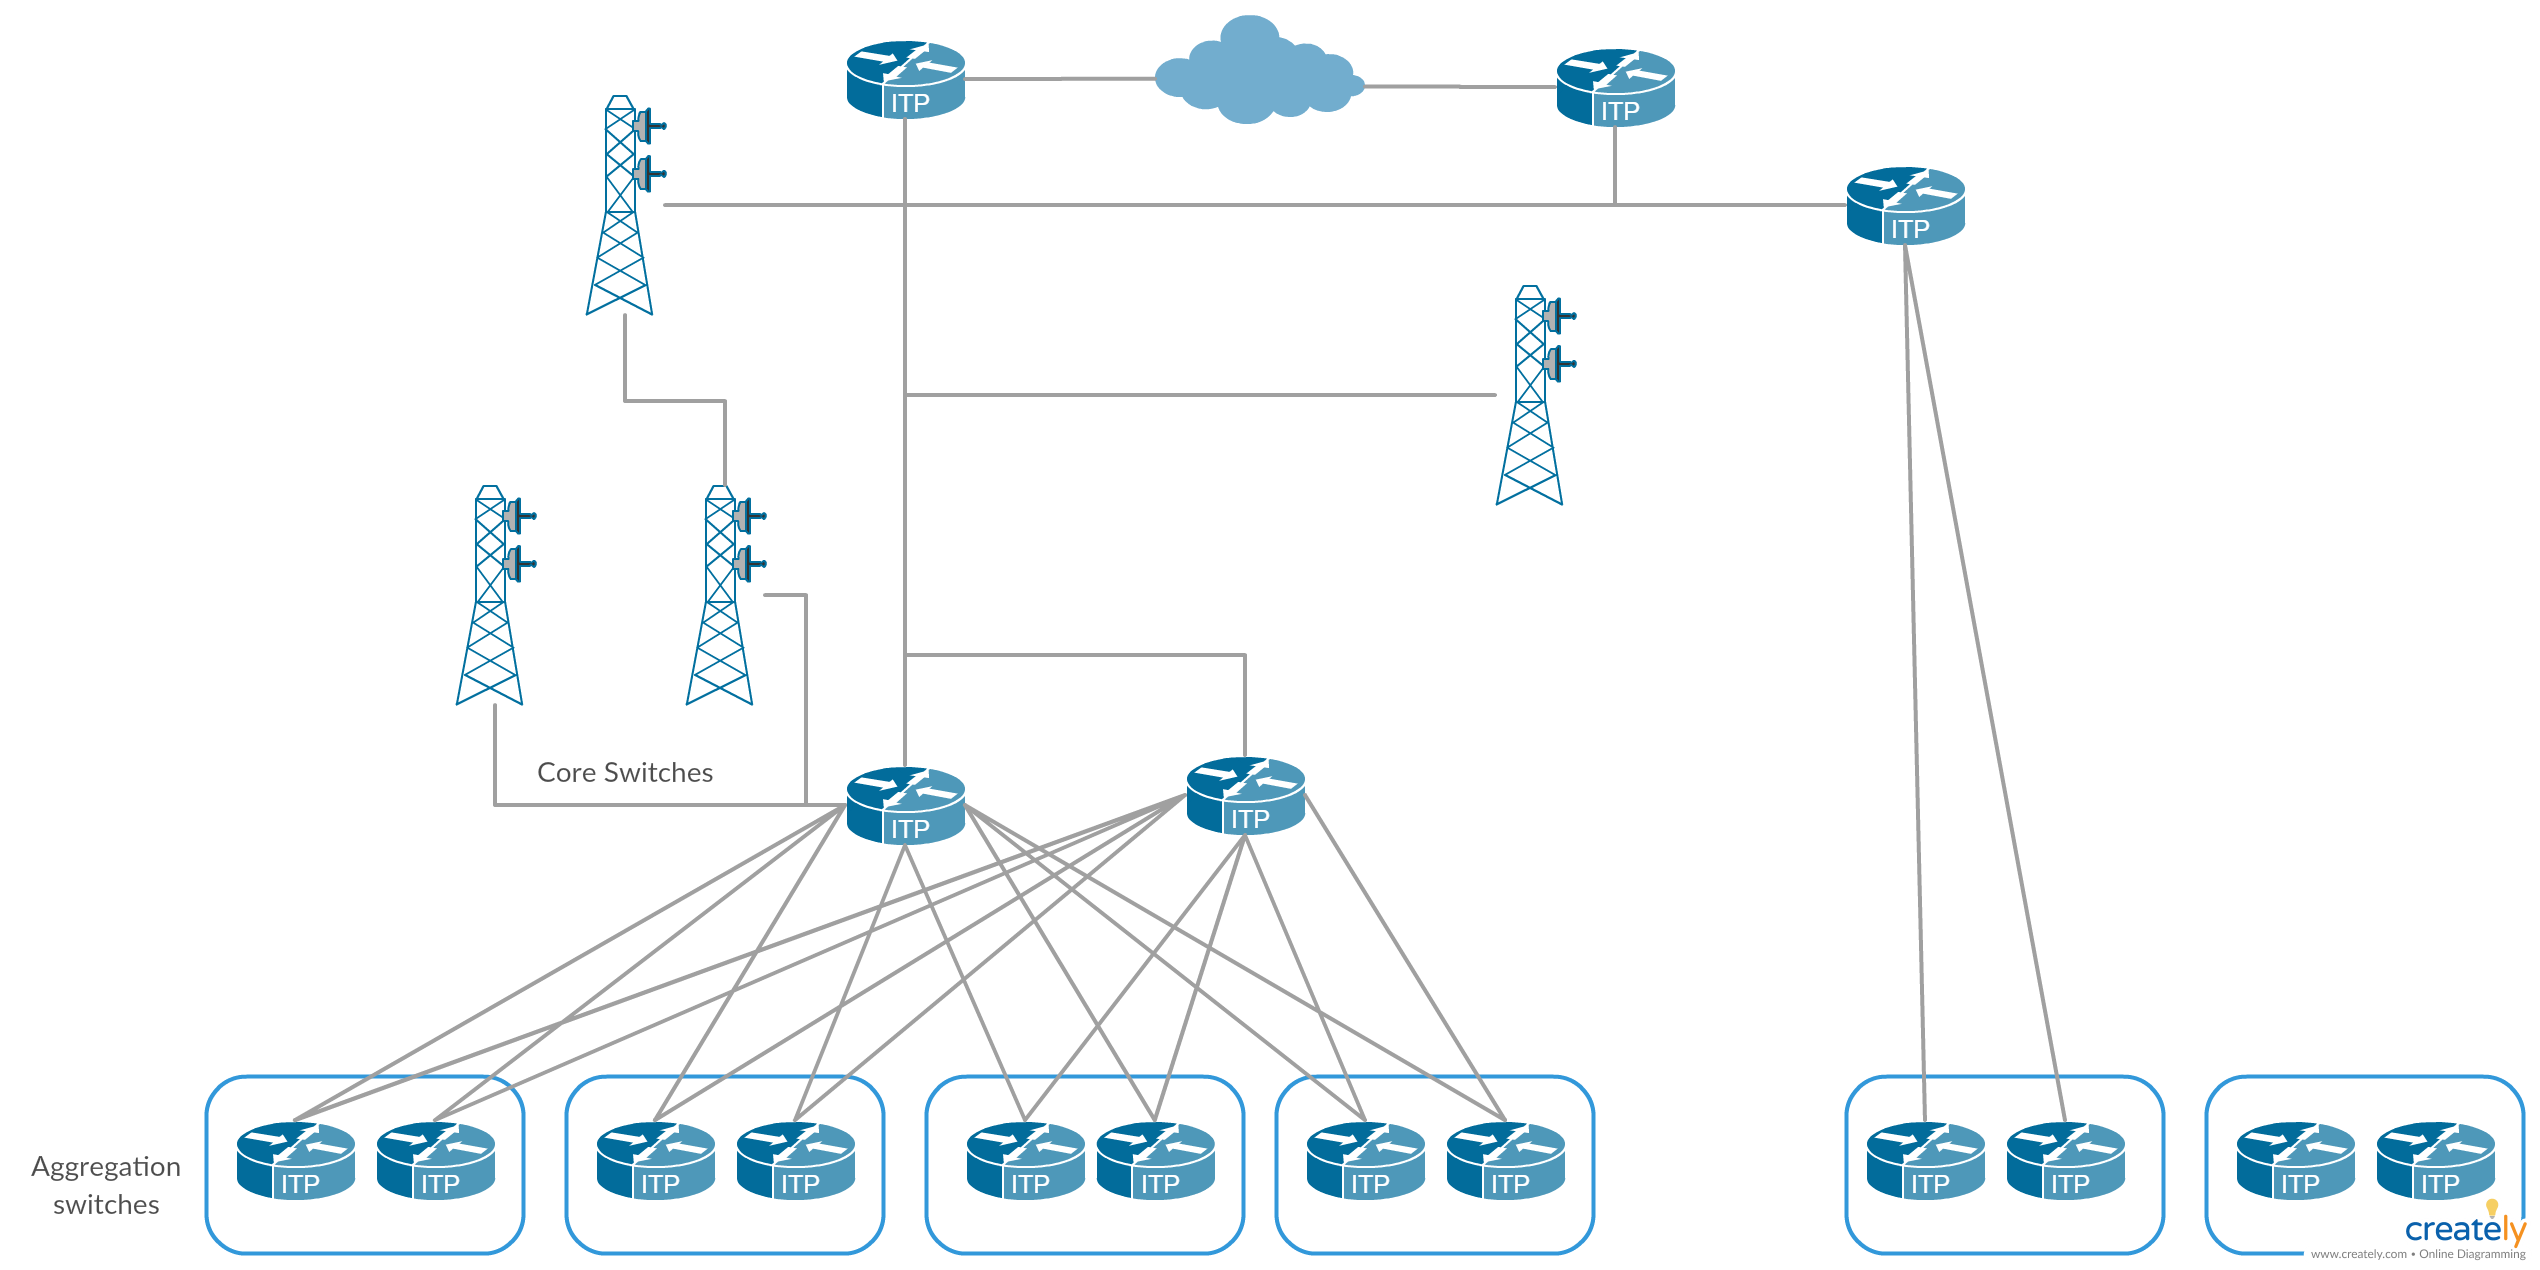 medium resolution of network infrastructure map to visualize network topology diagrams in creately you can edit this template and create your own diagram